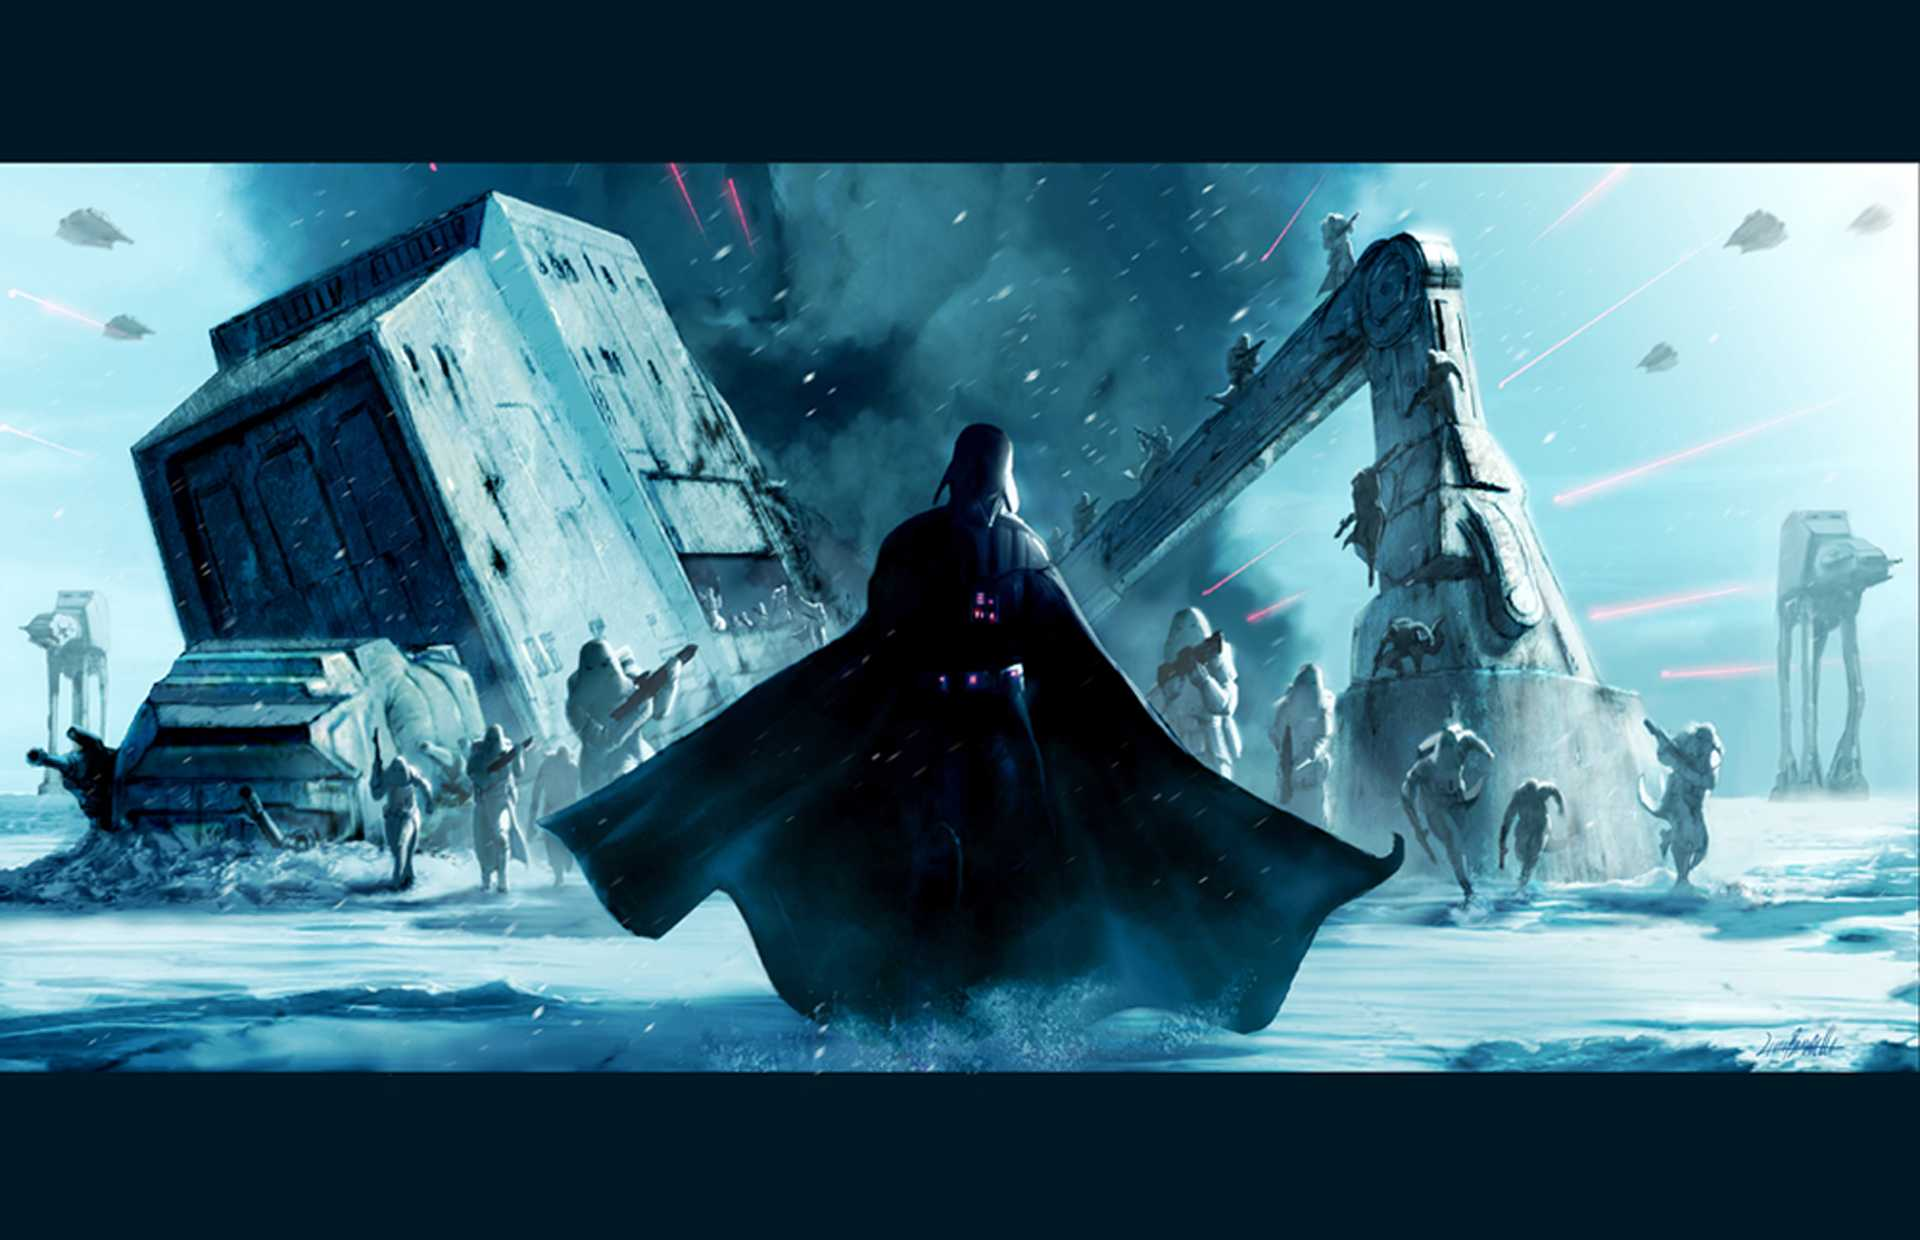 Epic Star Wars Wallpapers Top Free Epic Star Wars Backgrounds